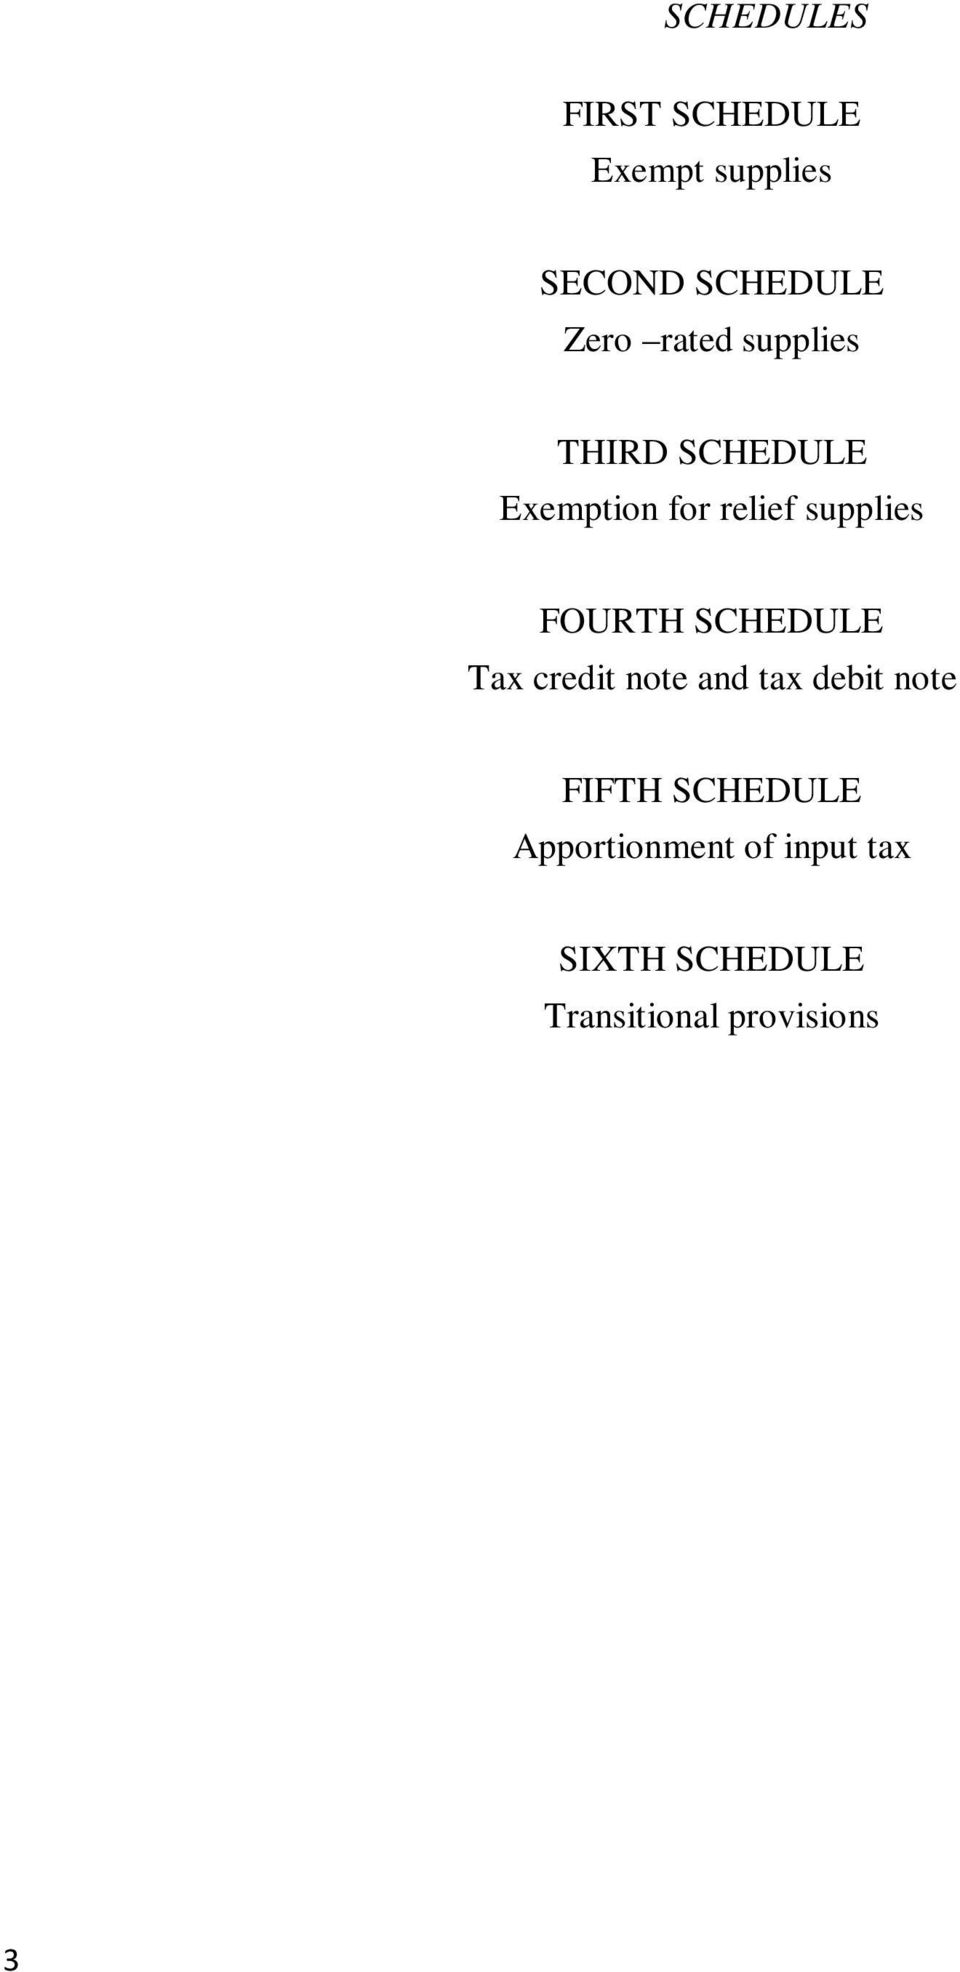 FOURTH SCHEDULE Tax credit note and tax debit note FIFTH